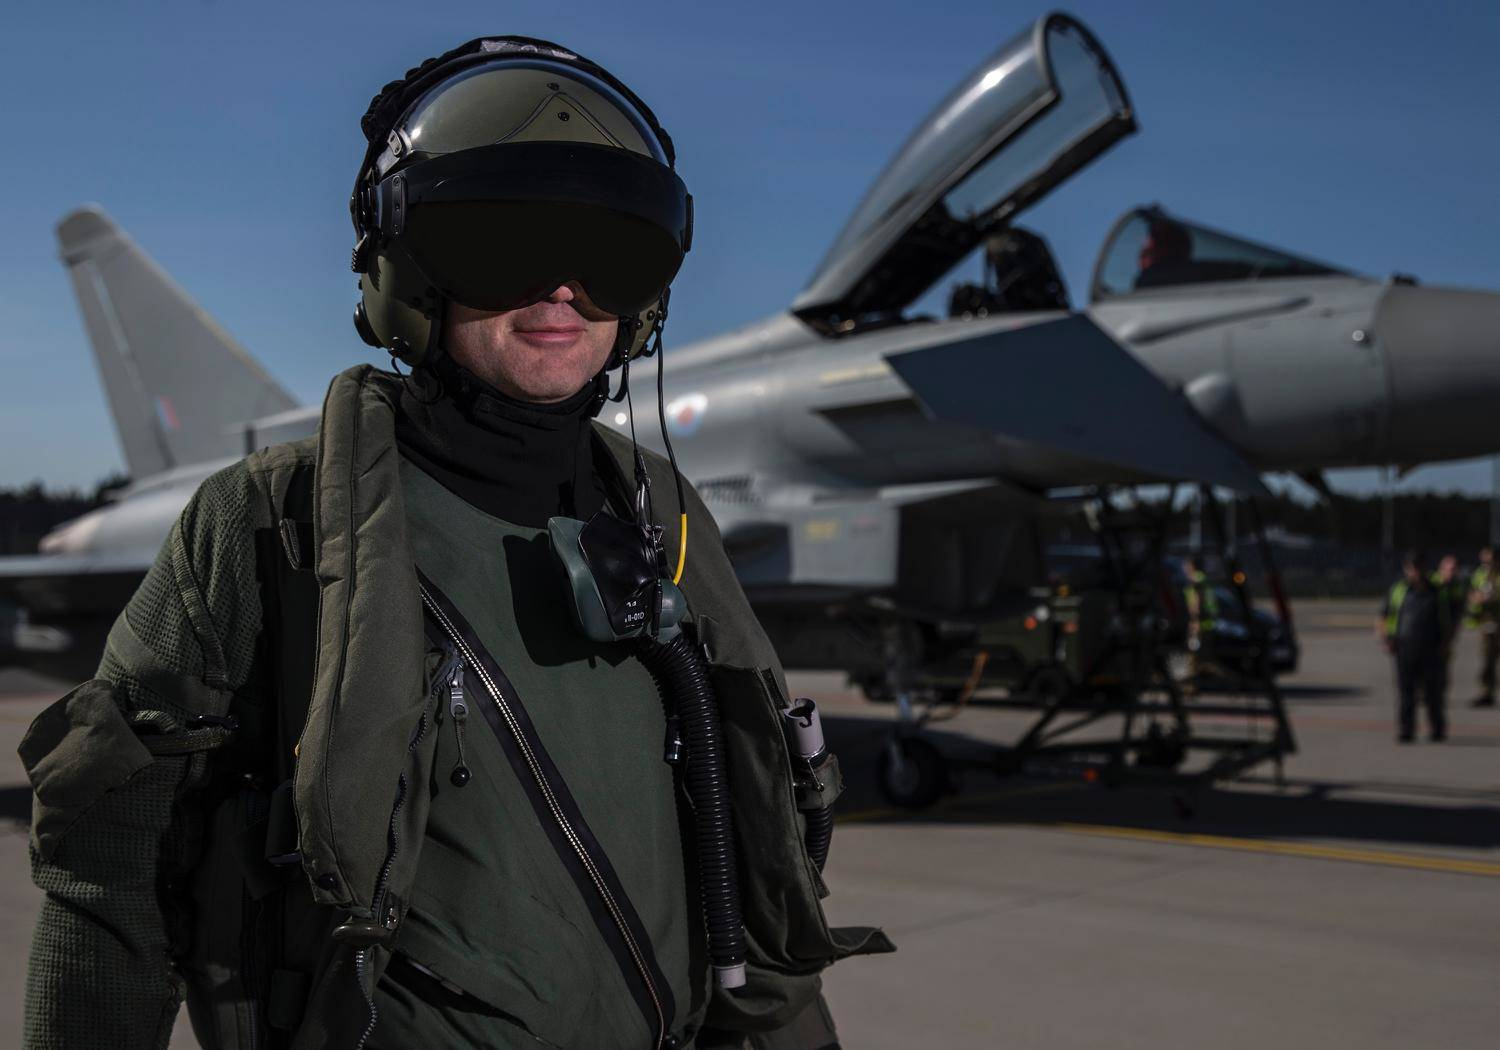 A UK fighter pilot posing with his Typhoon fighter. Photo: UK Ministry of Defence